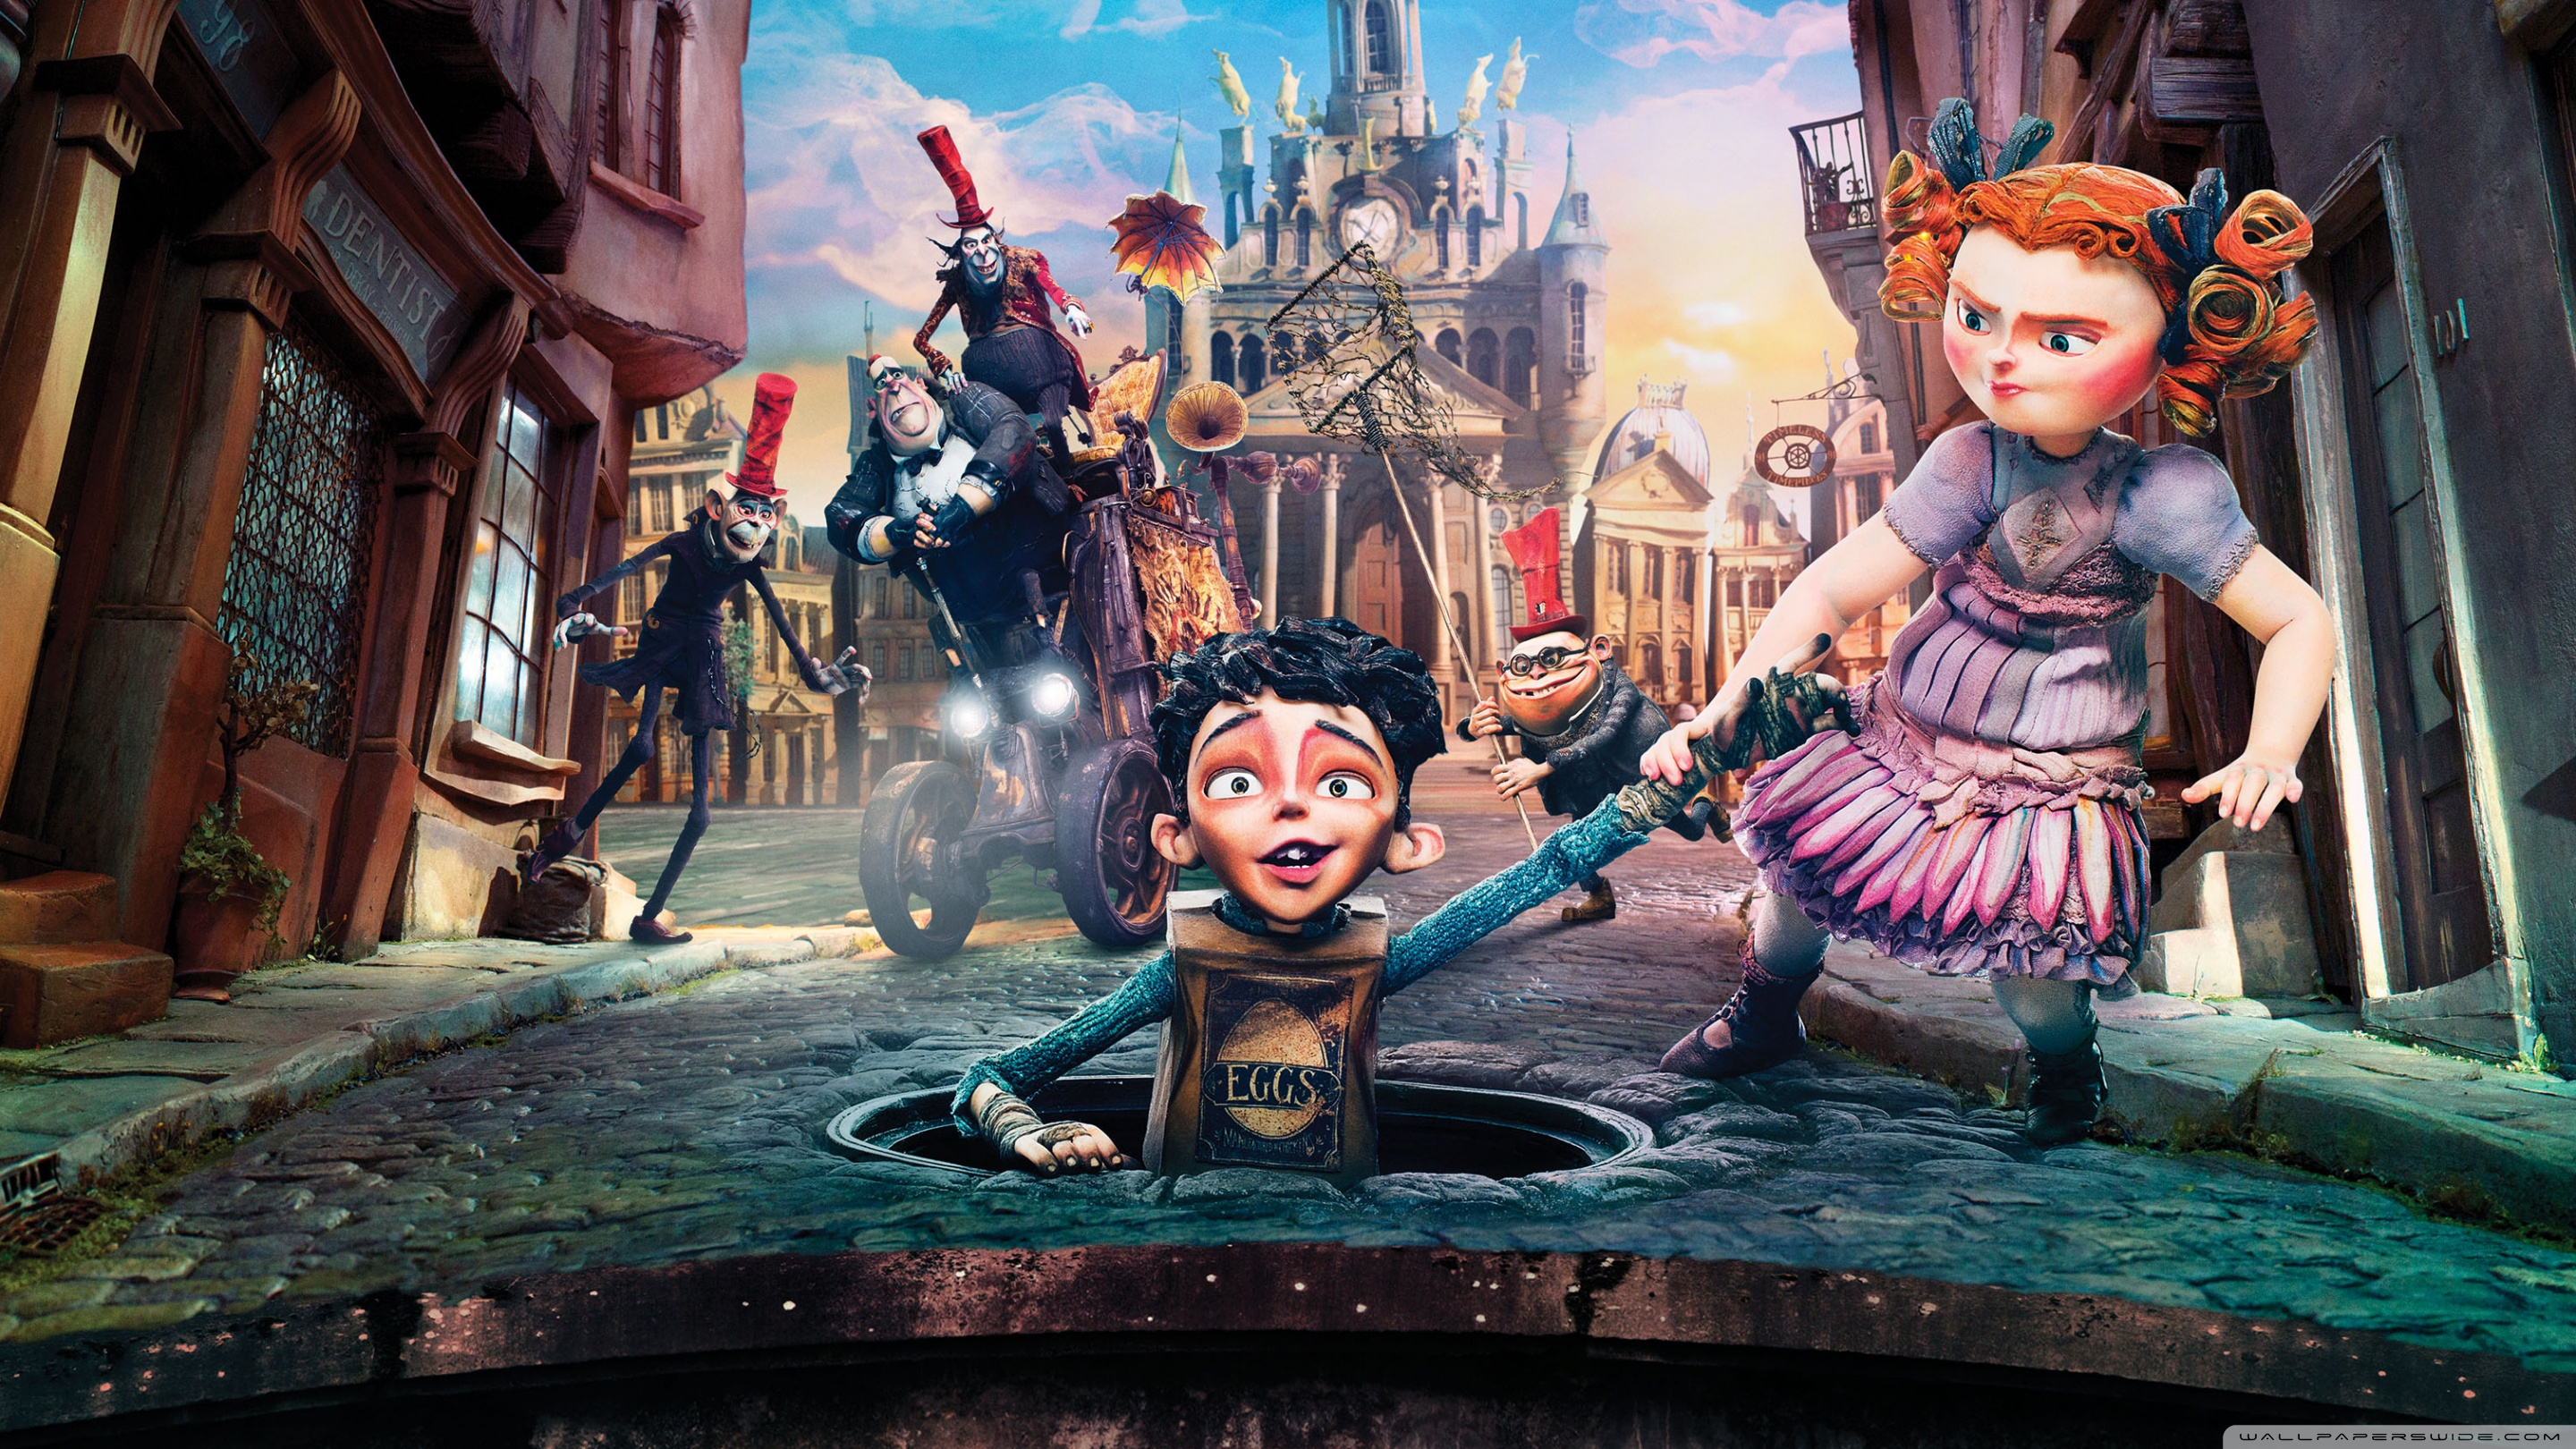 The Boxtrolls Wallpapers and Background Images   stmednet 2880x1620